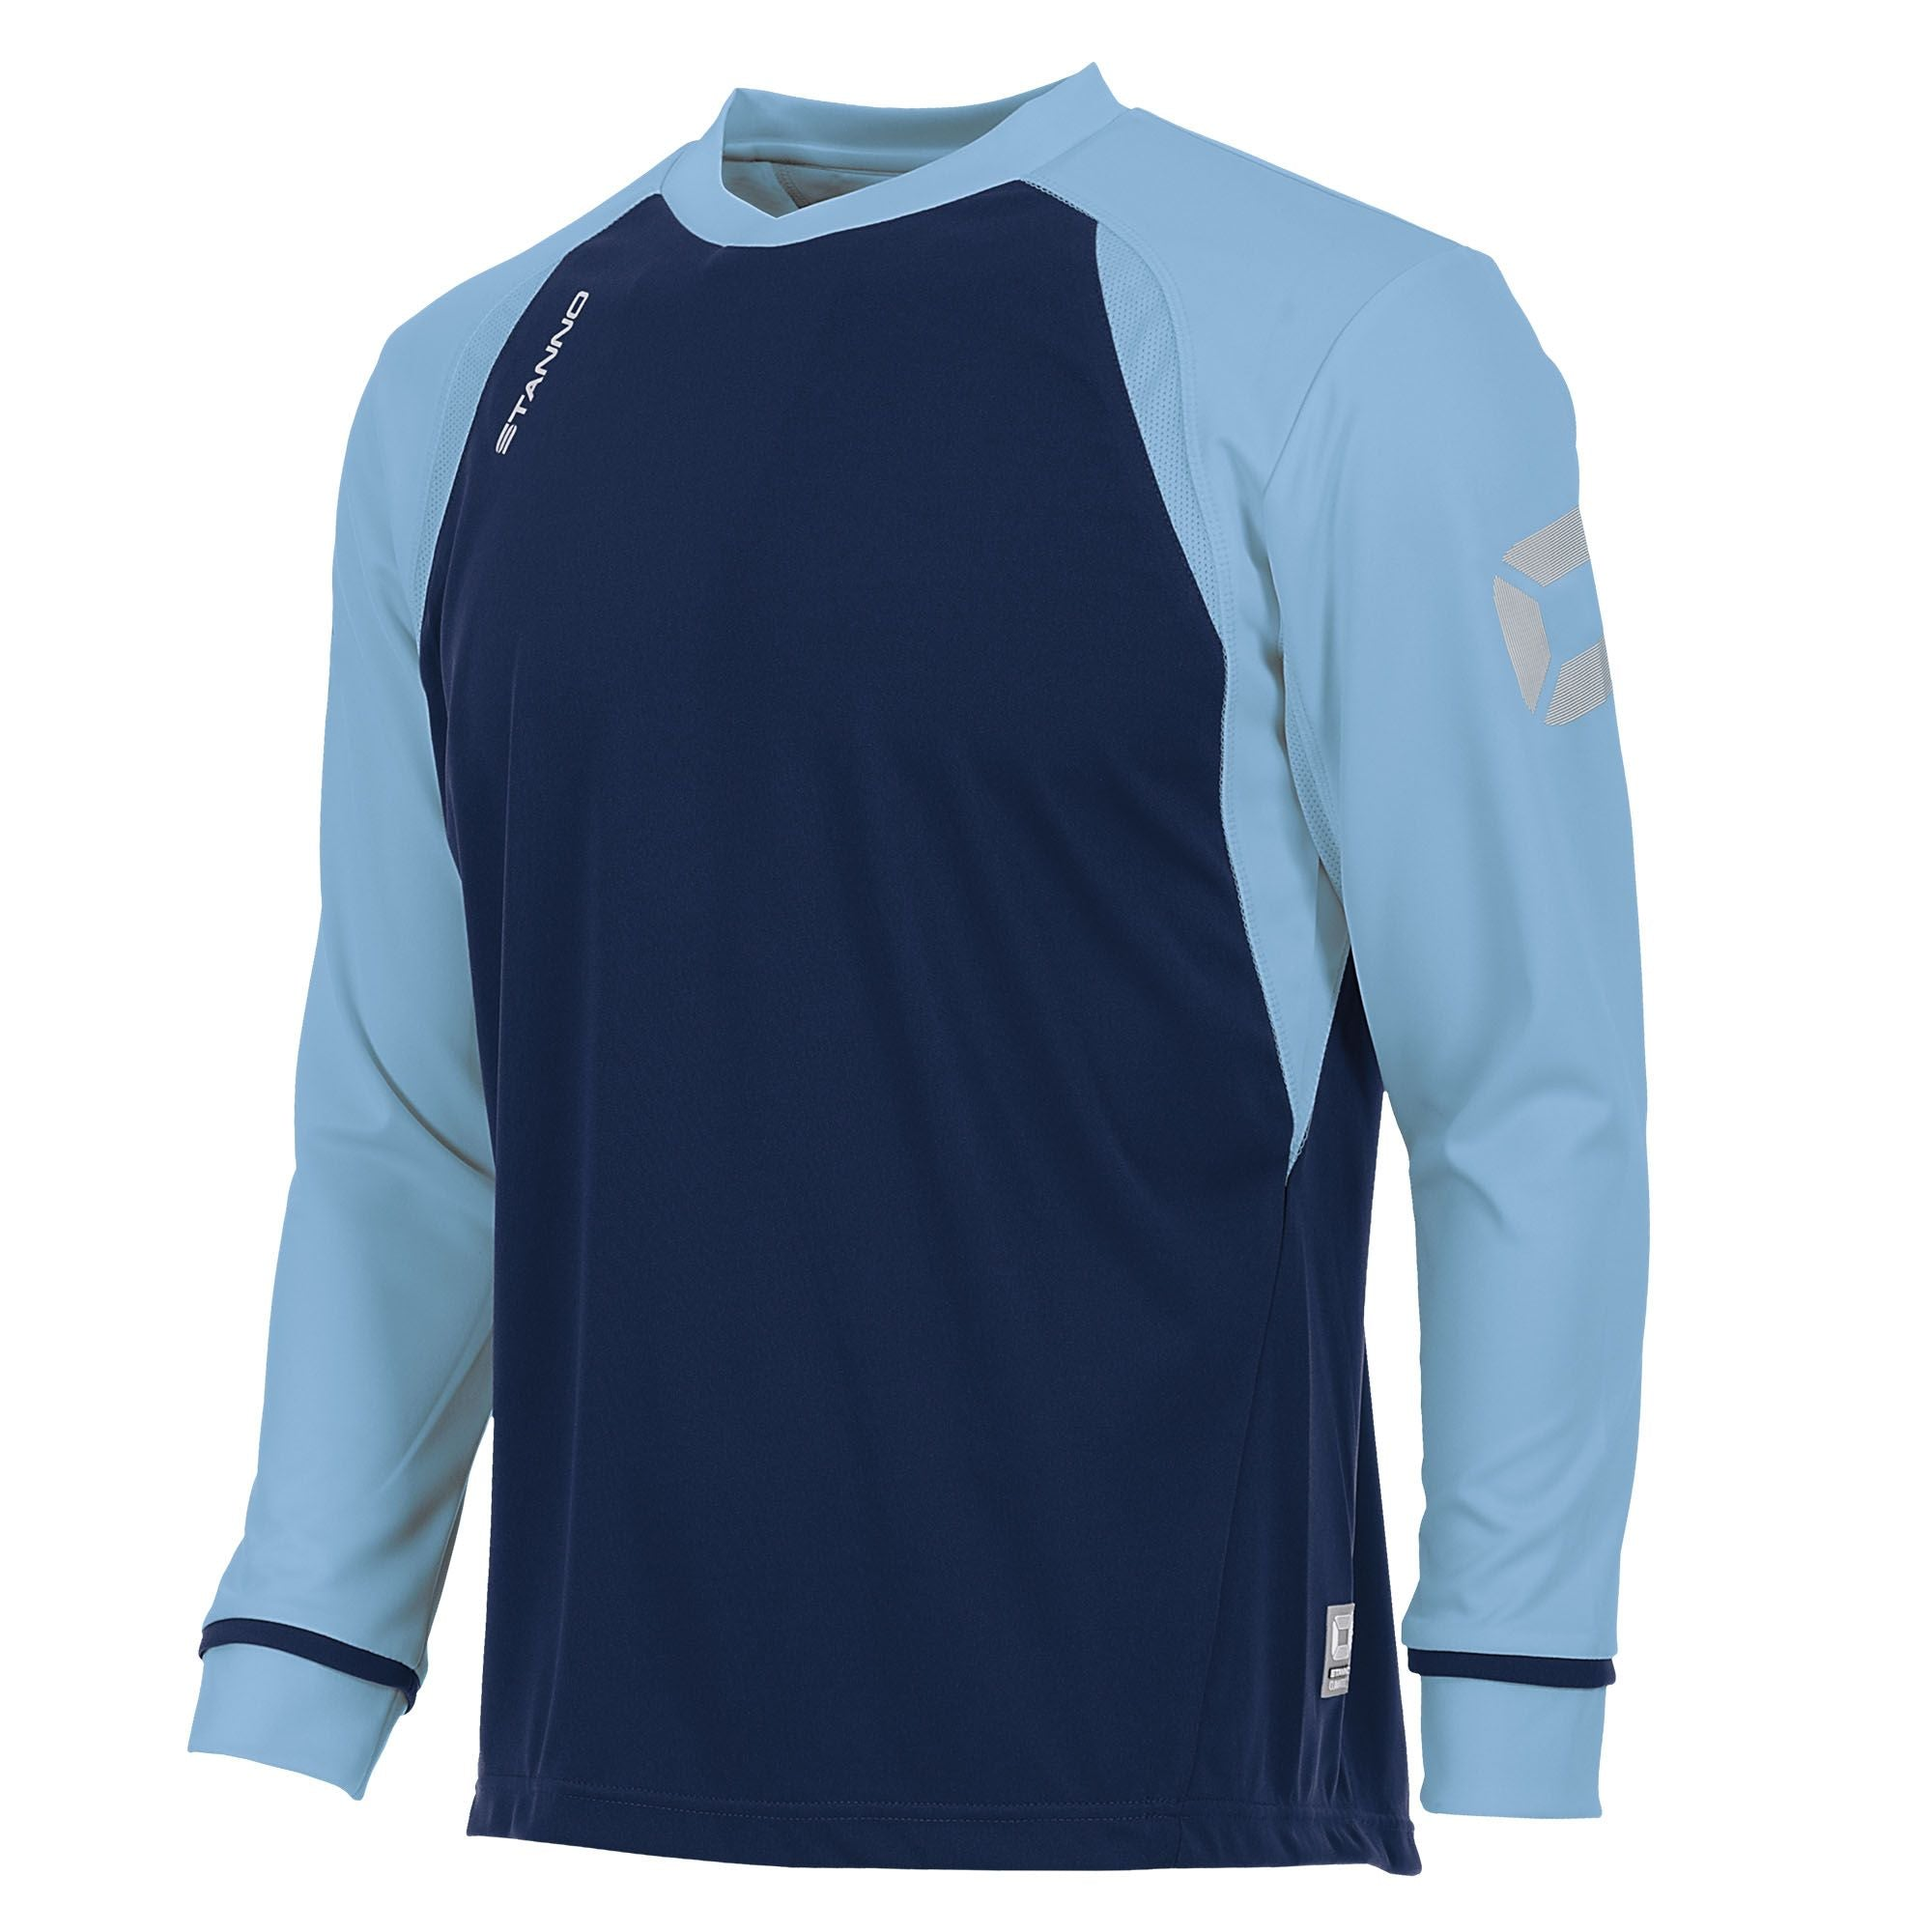 Long sleeved Stanno Liga shirt in navy with contrast sky blue sleeves and collar, Stadium logo on the sleeve.